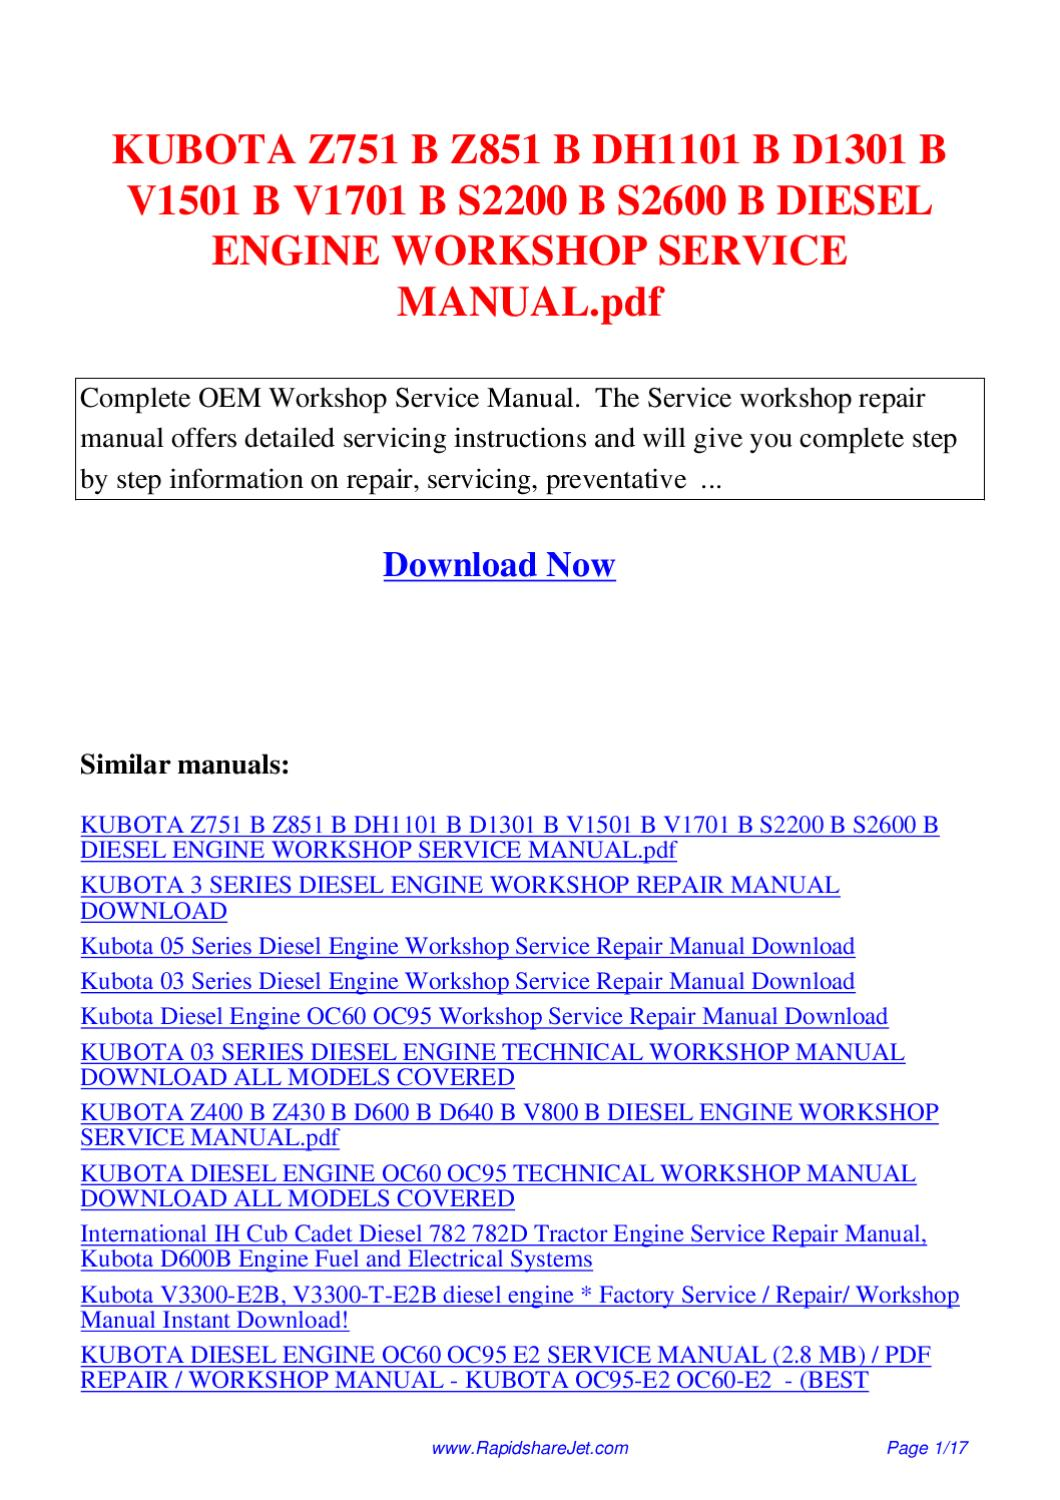 KUBOTA Z751 B Z851 B DH1101 B D1301 B V1501 B V1701 B S2200 B S2600 B  DIESEL ENGINE WORKSHOP by Hong Lee - issuu